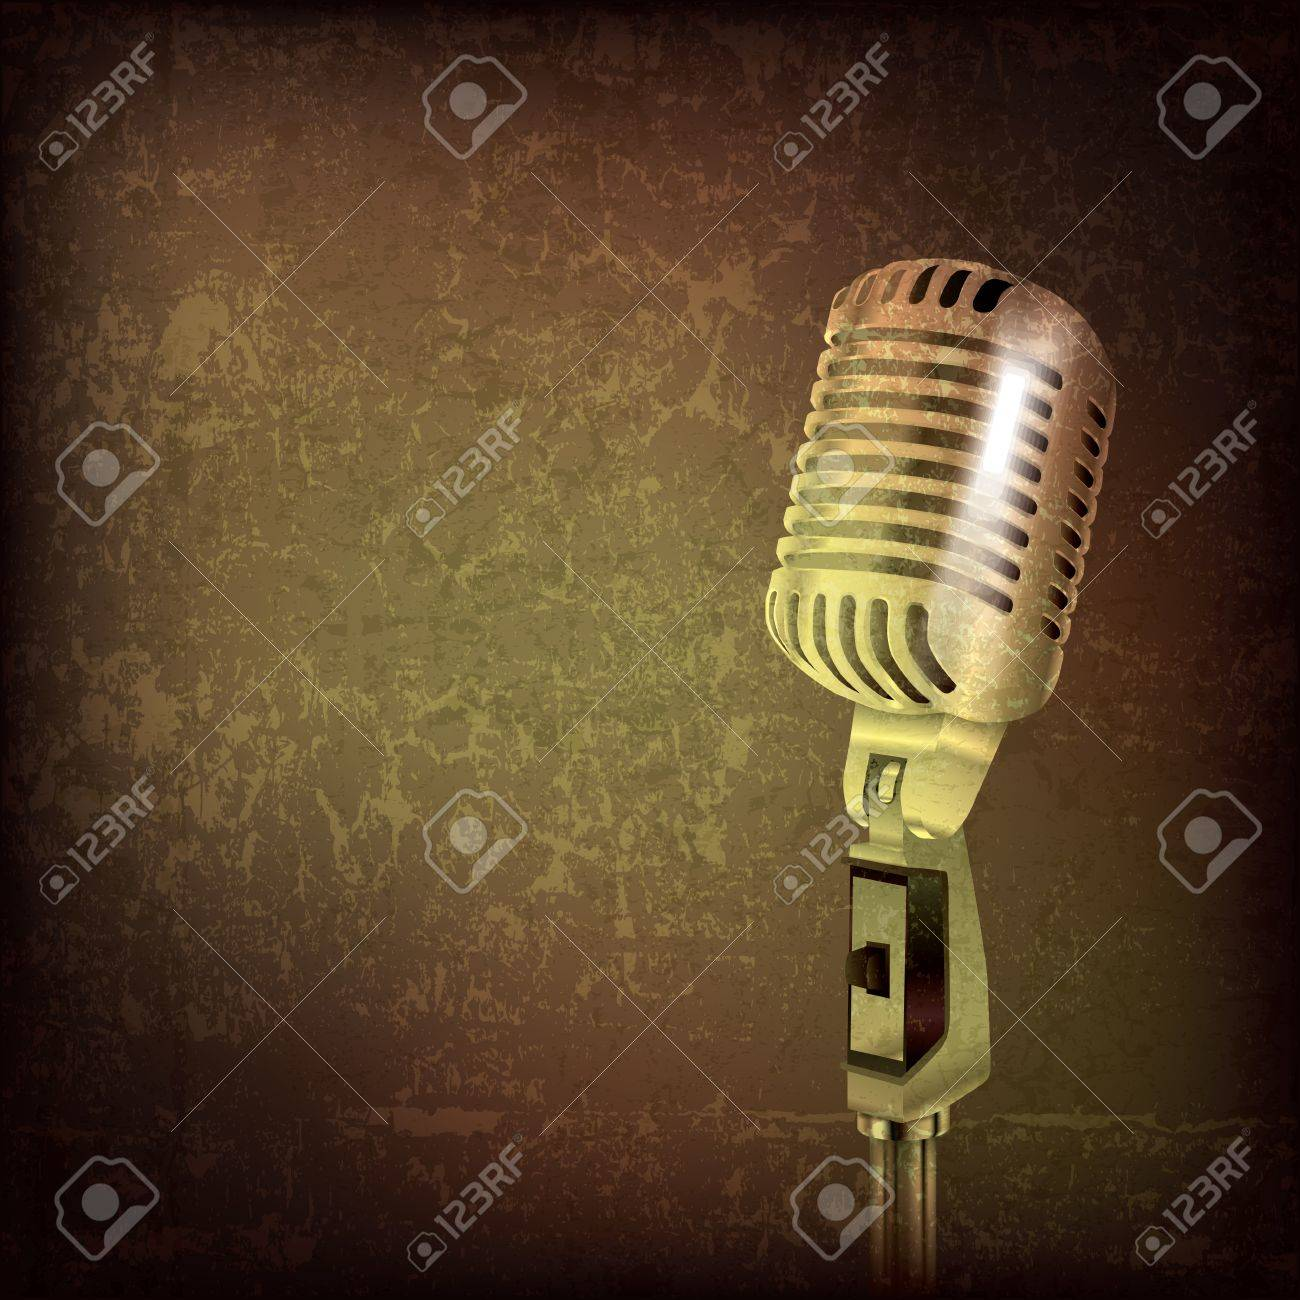 abstract grunge music background with retro microphone Stock Vector - 15375391